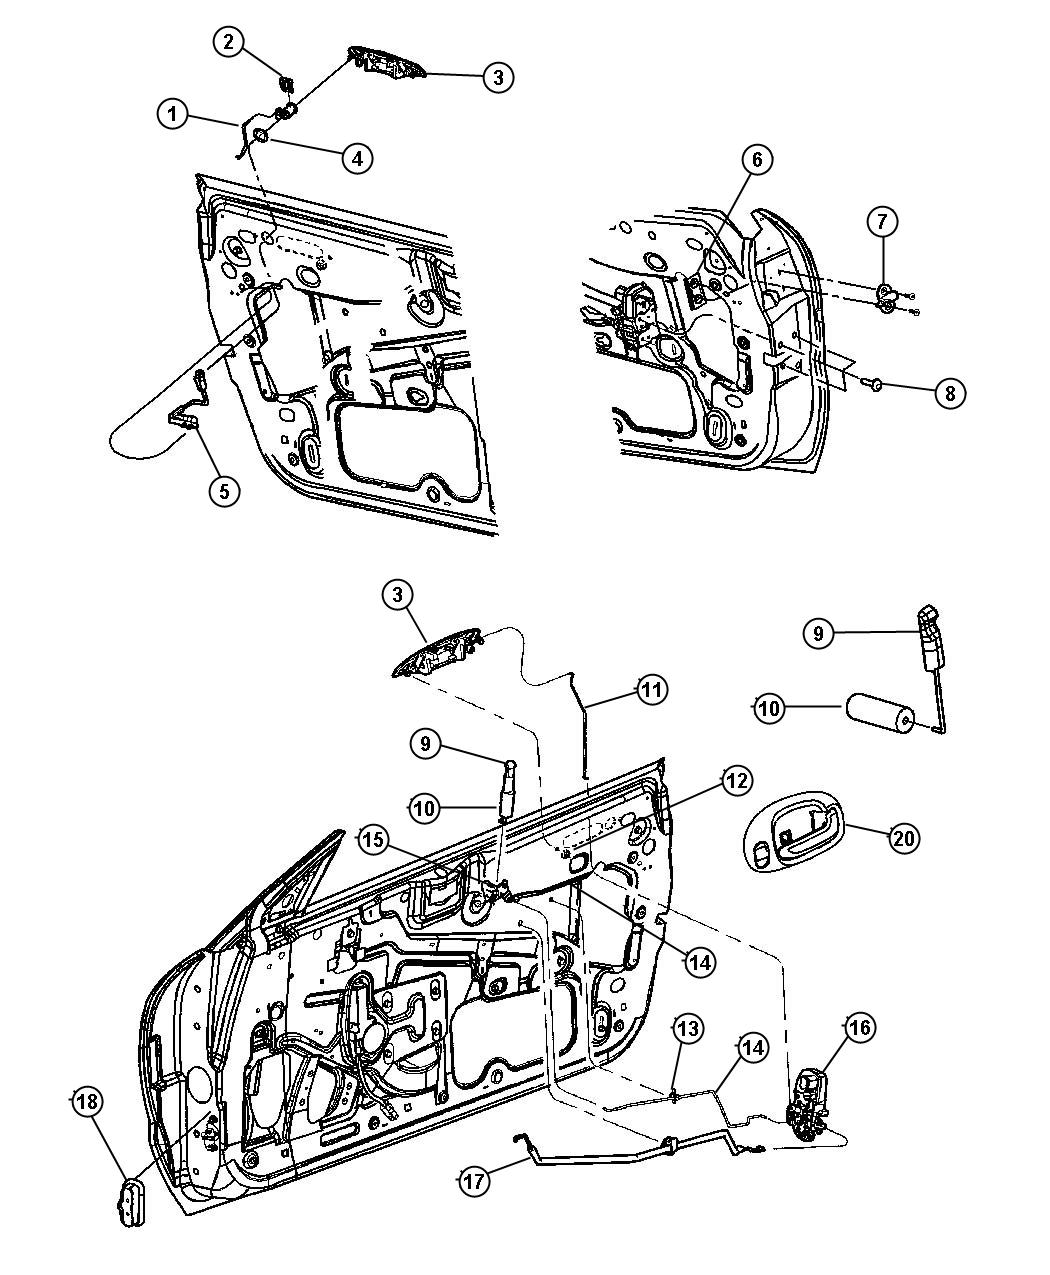 Gmc Topkick C4500 Suspension Diagram. Gmc. Auto Wiring Diagram